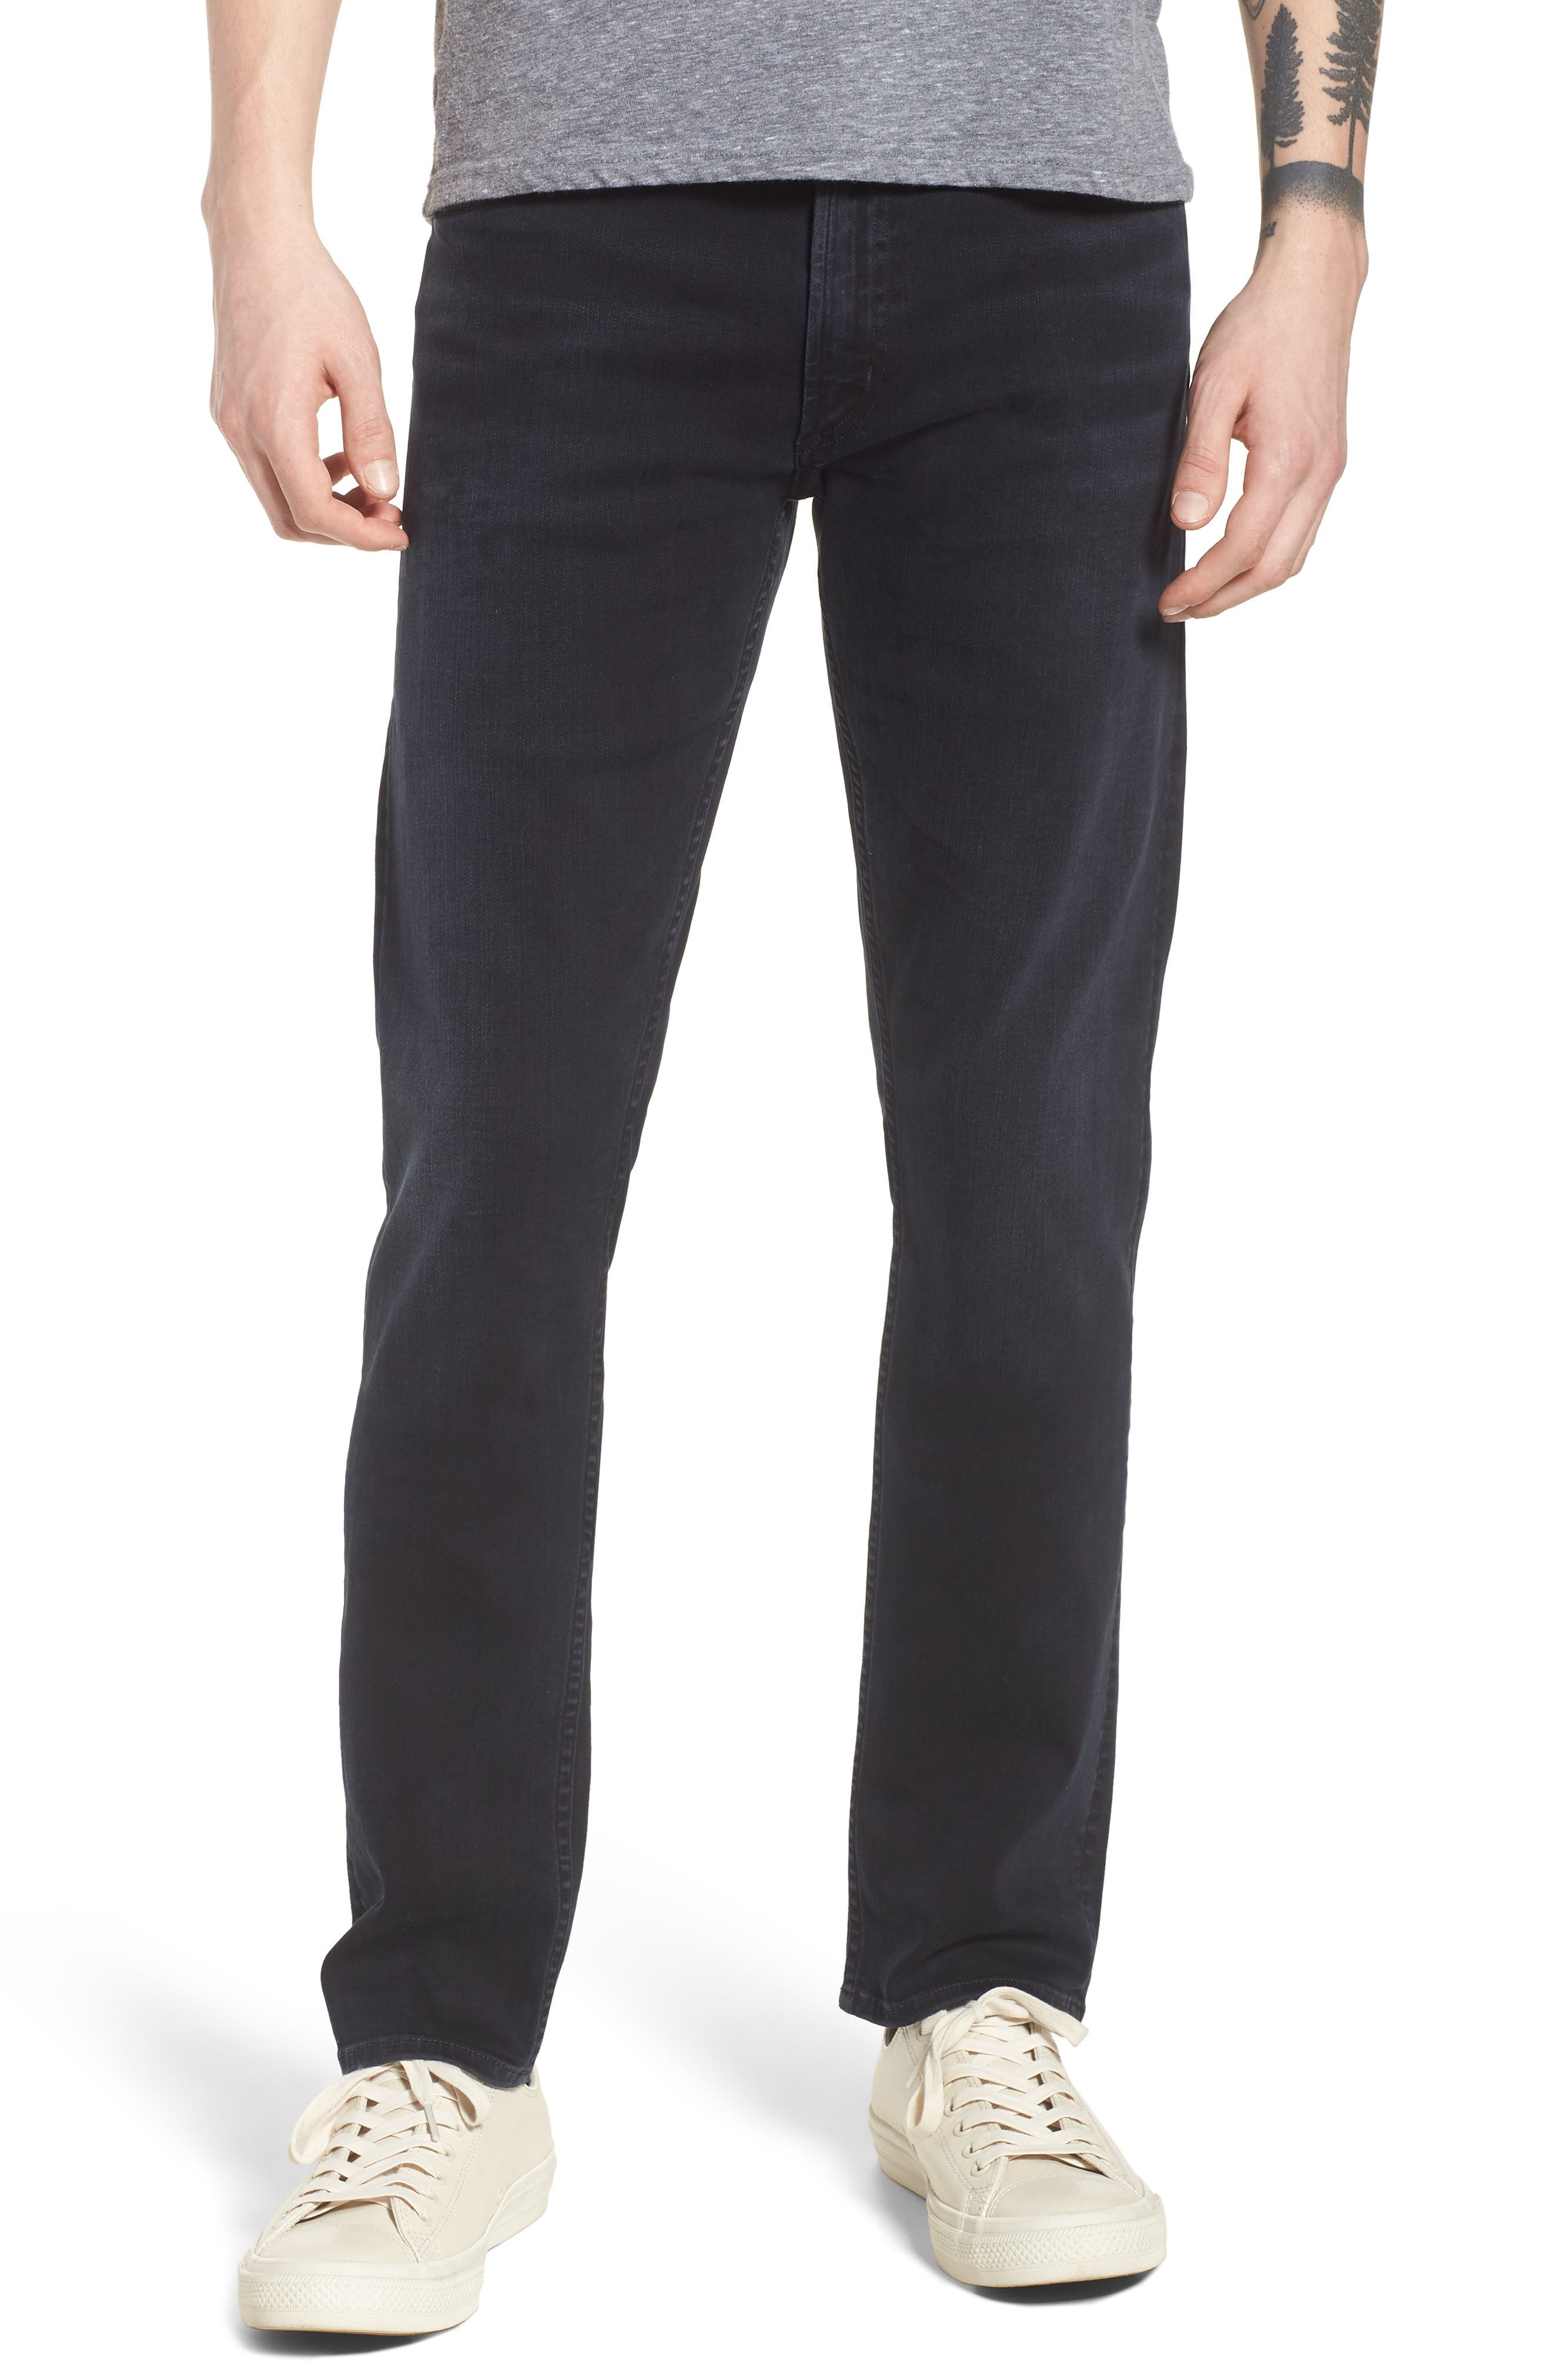 Bowery Slim Fit Jeans,                             Main thumbnail 1, color,                             483